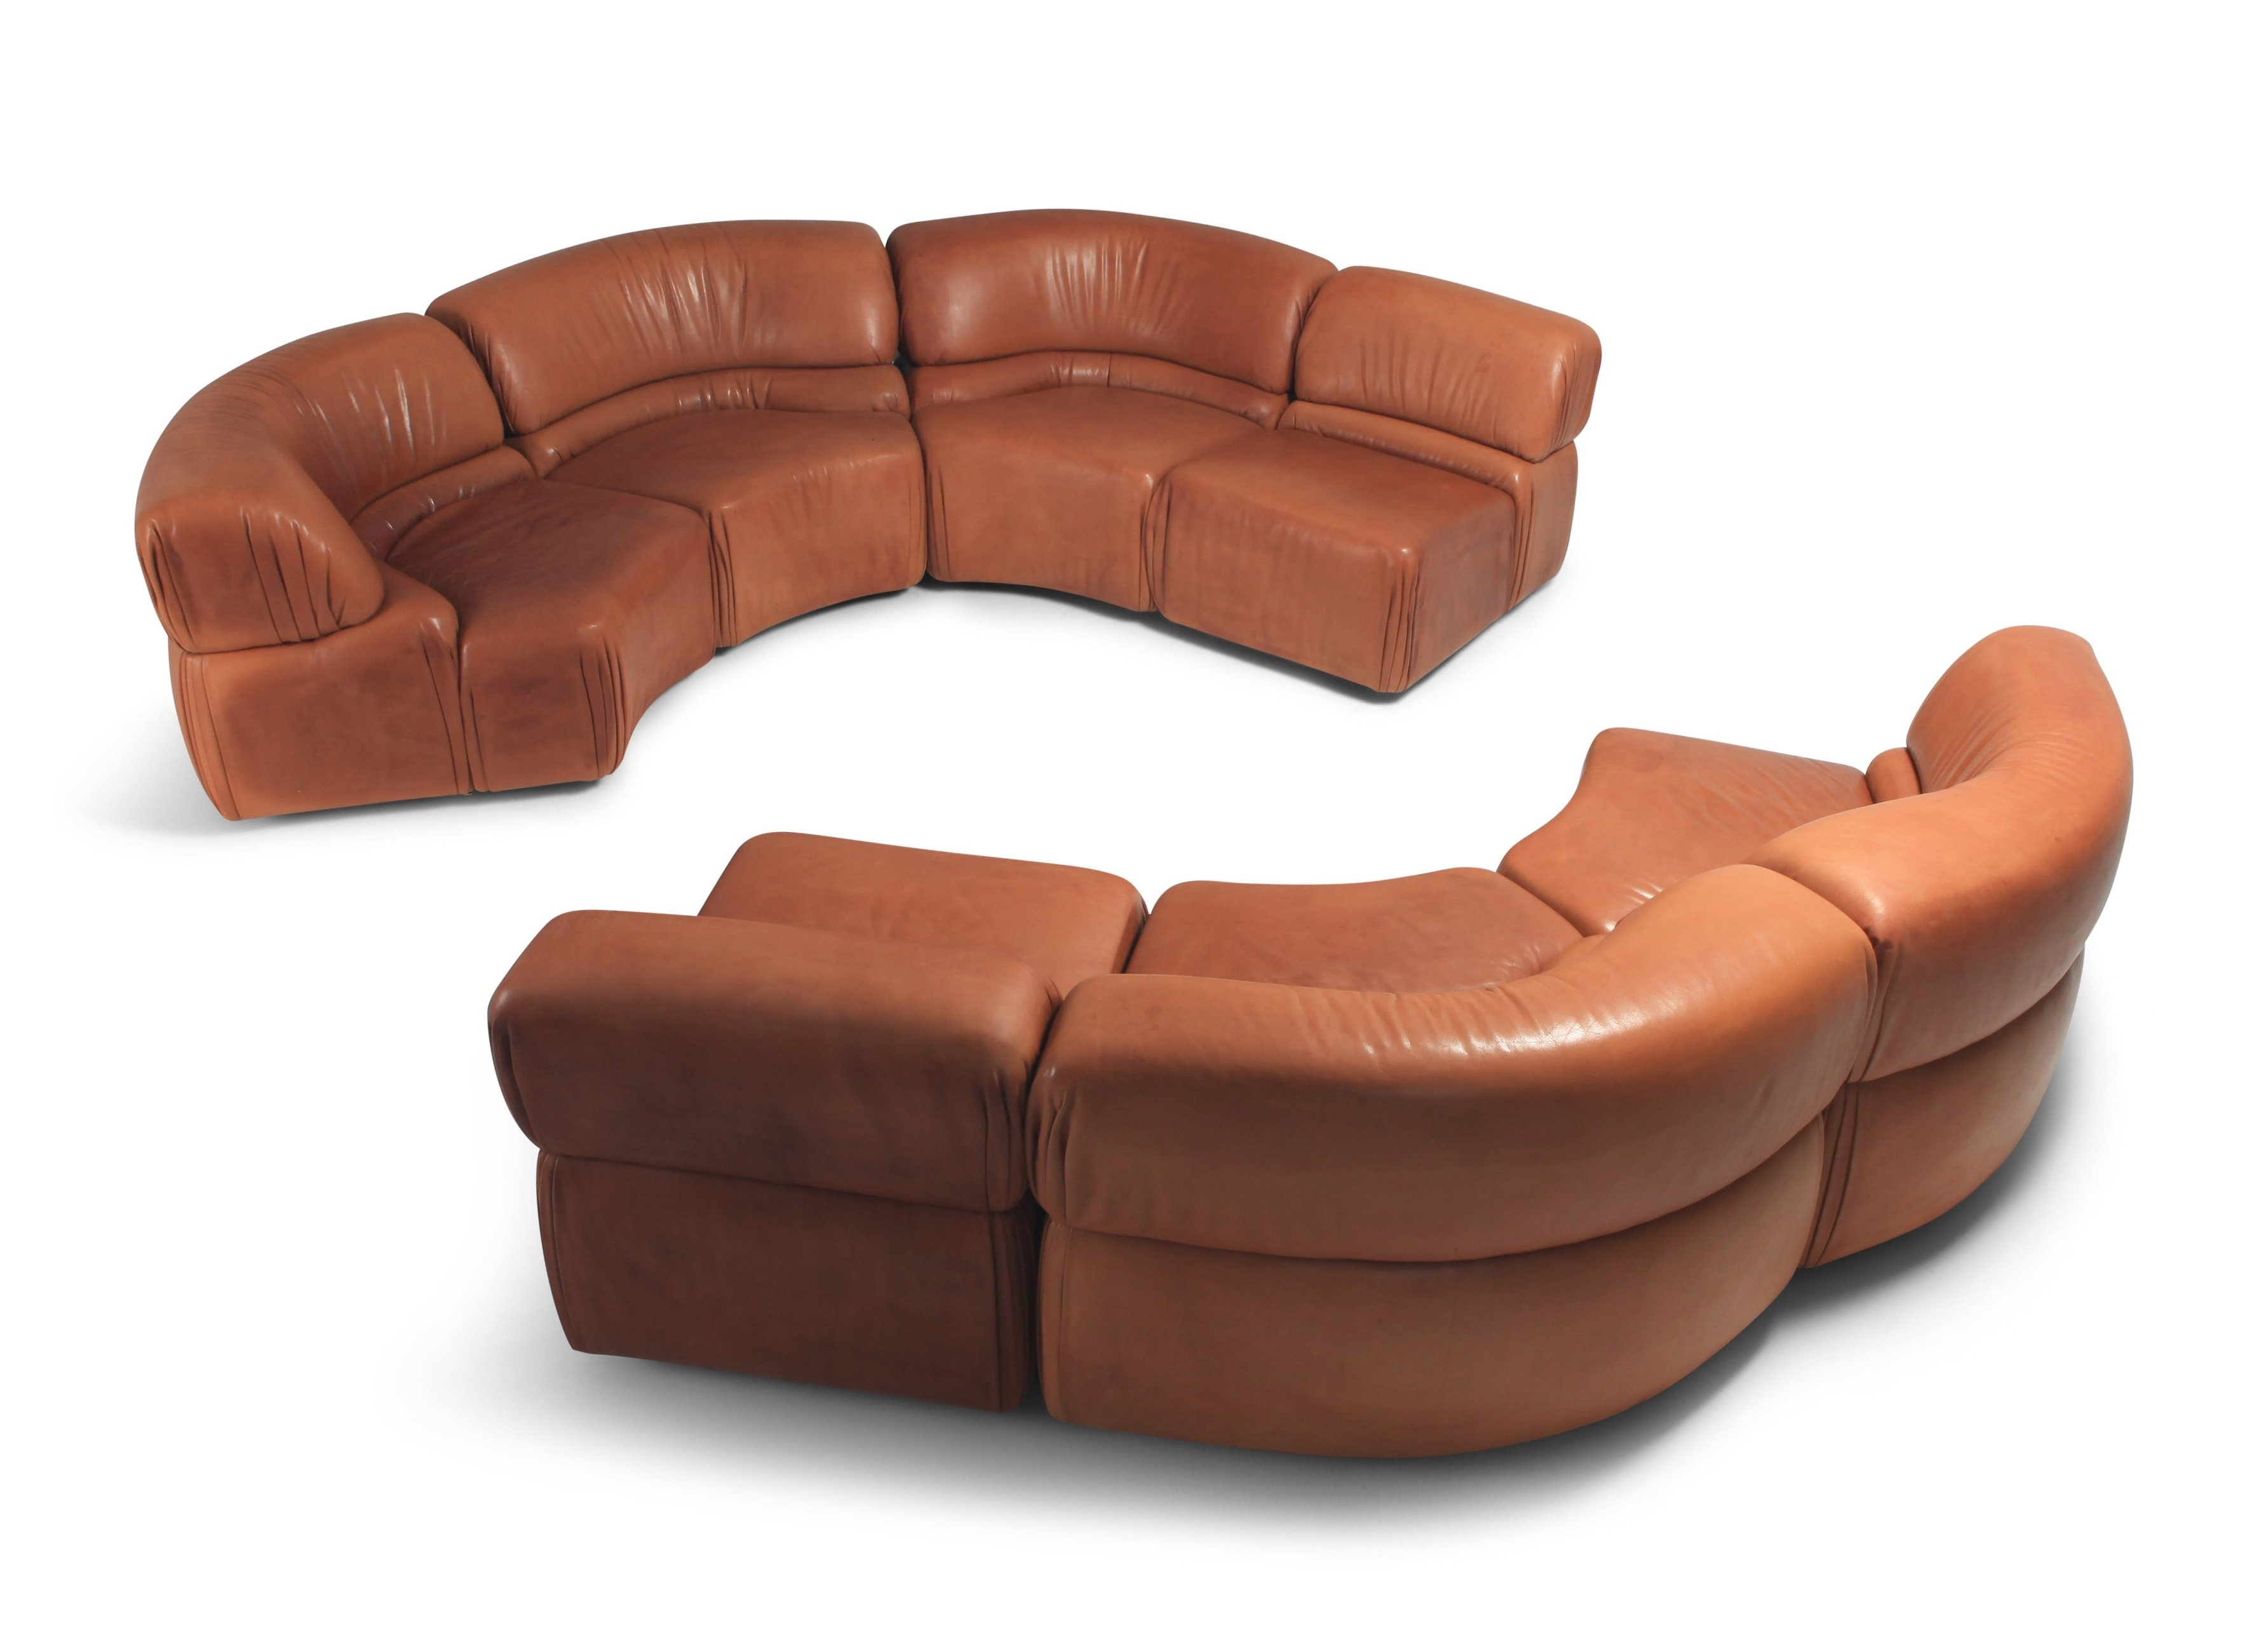 Sectional Cognac Leather Sofa Cosmos Sofa By De Sede Switzerland 1970s